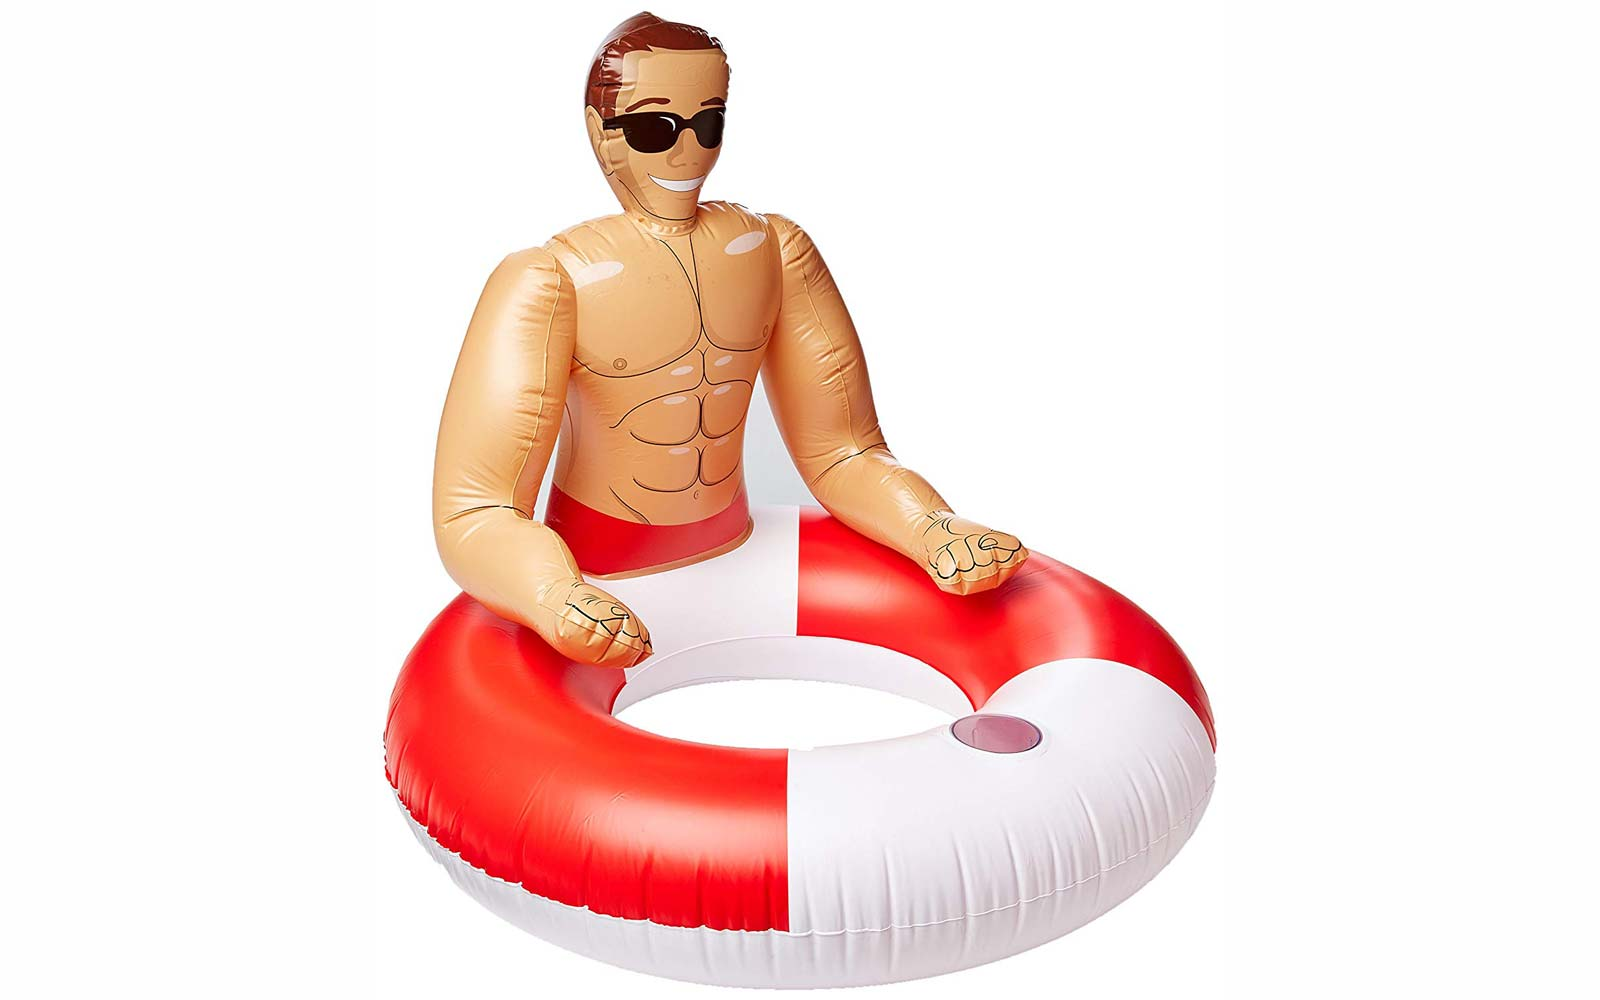 Meet Chad, the Hunky 'Boyfriend' Pool Float That's Making Waves on Amazon